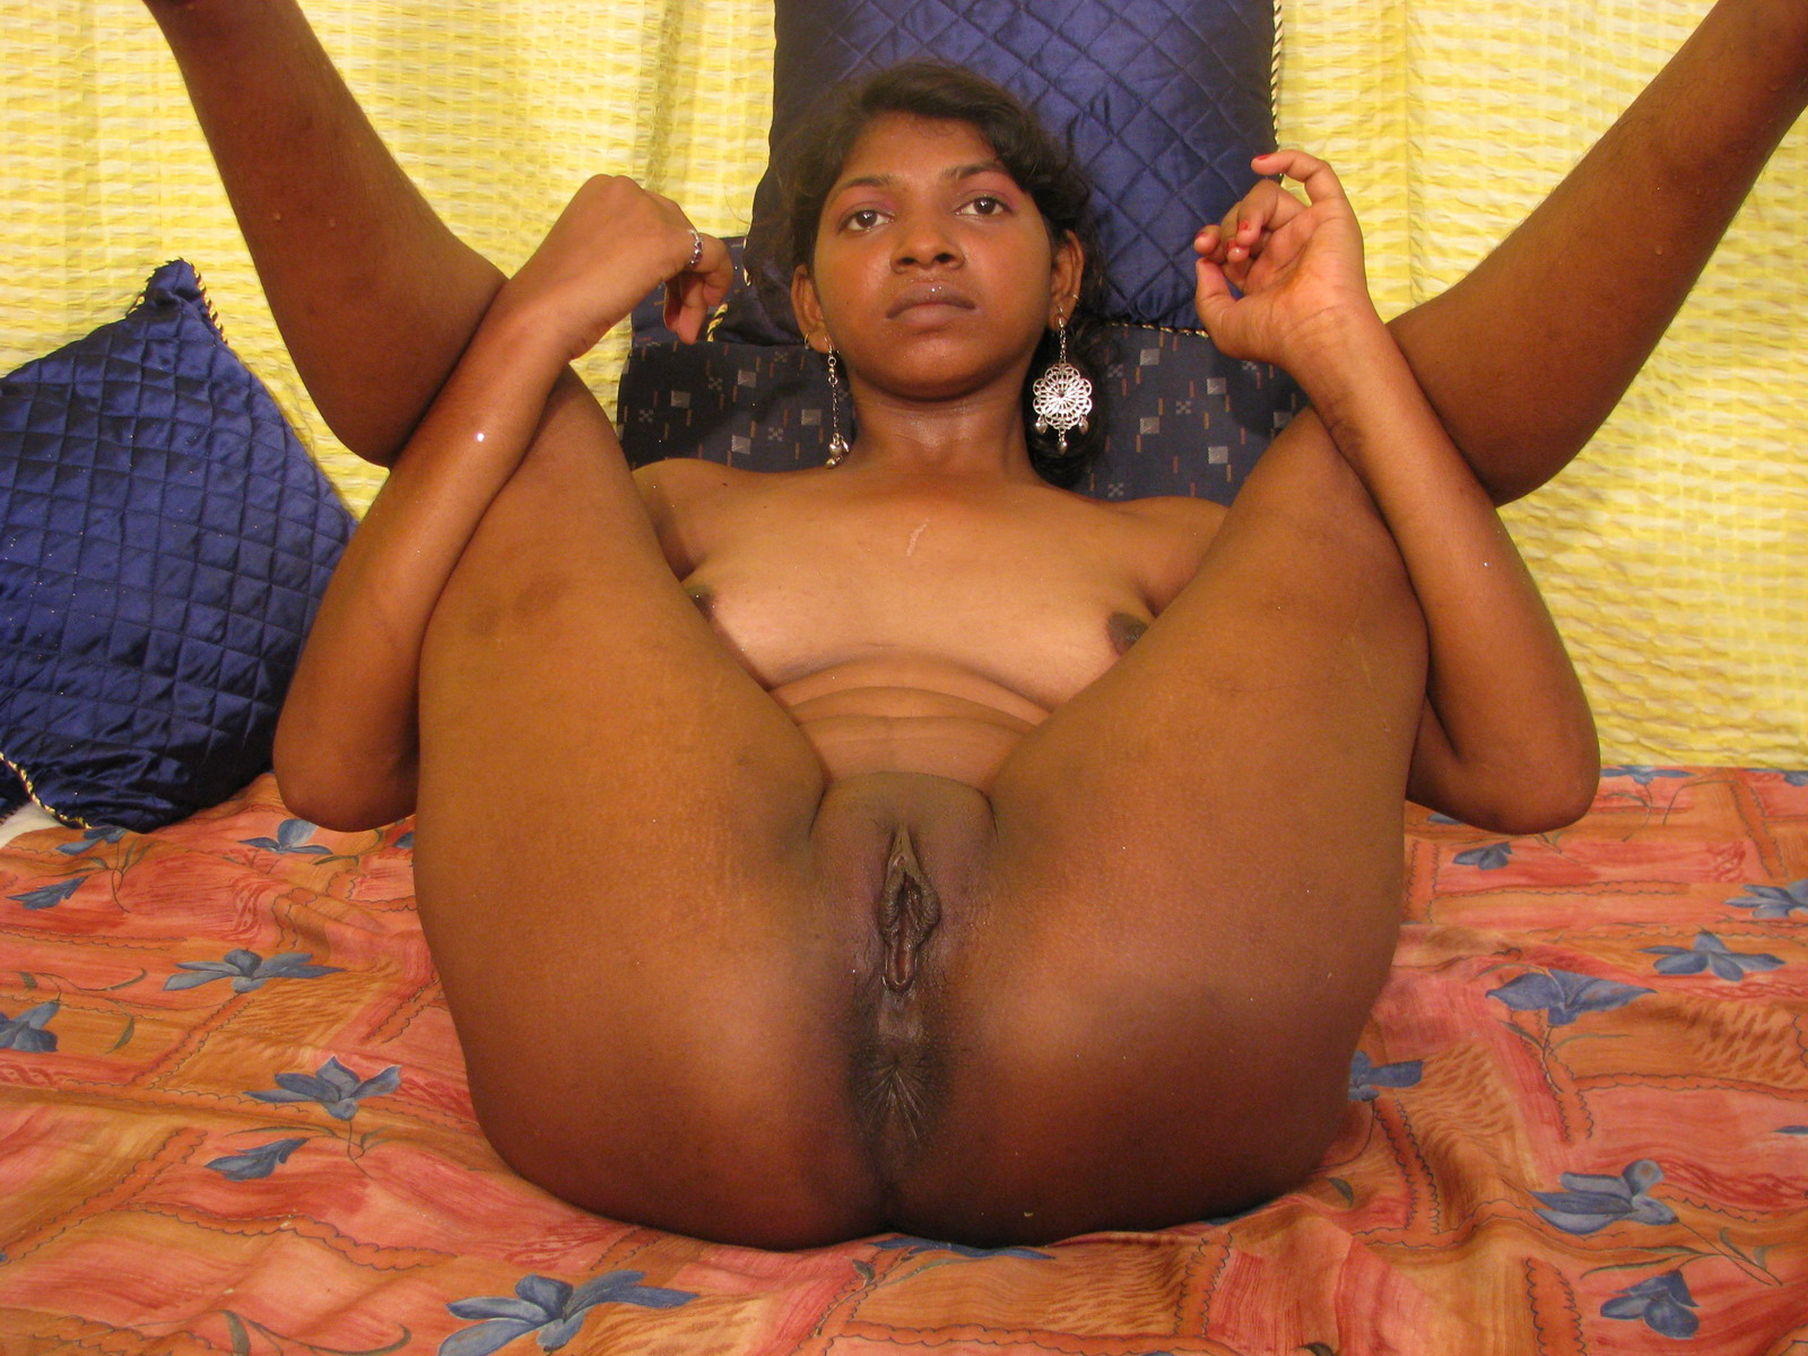 Nude indian moms girls accept. The